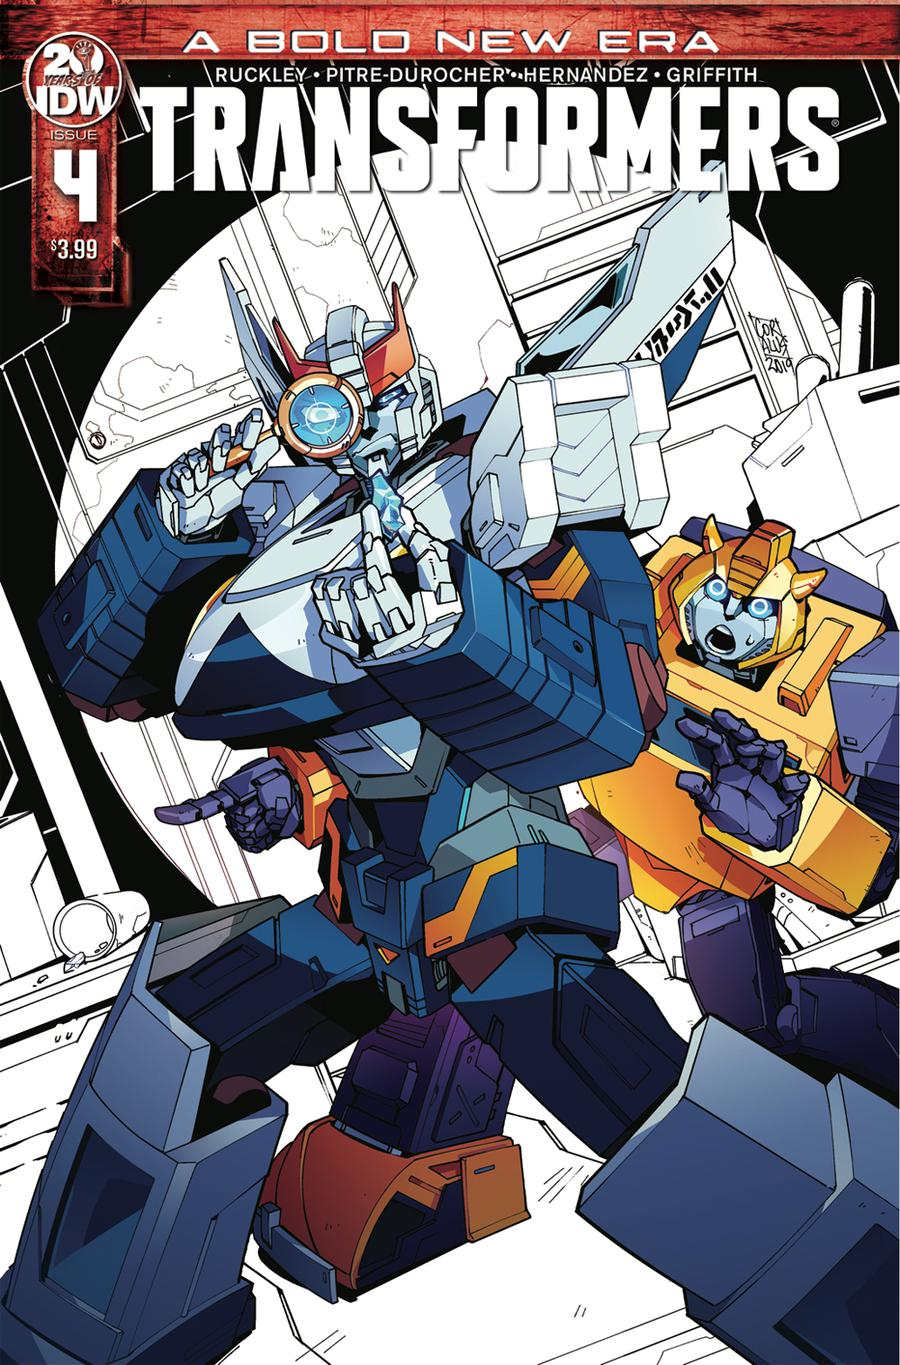 Transformers Vol 4 #4 Cover D 2nd Ptg Variant Sara Pitre-Durocher Cover